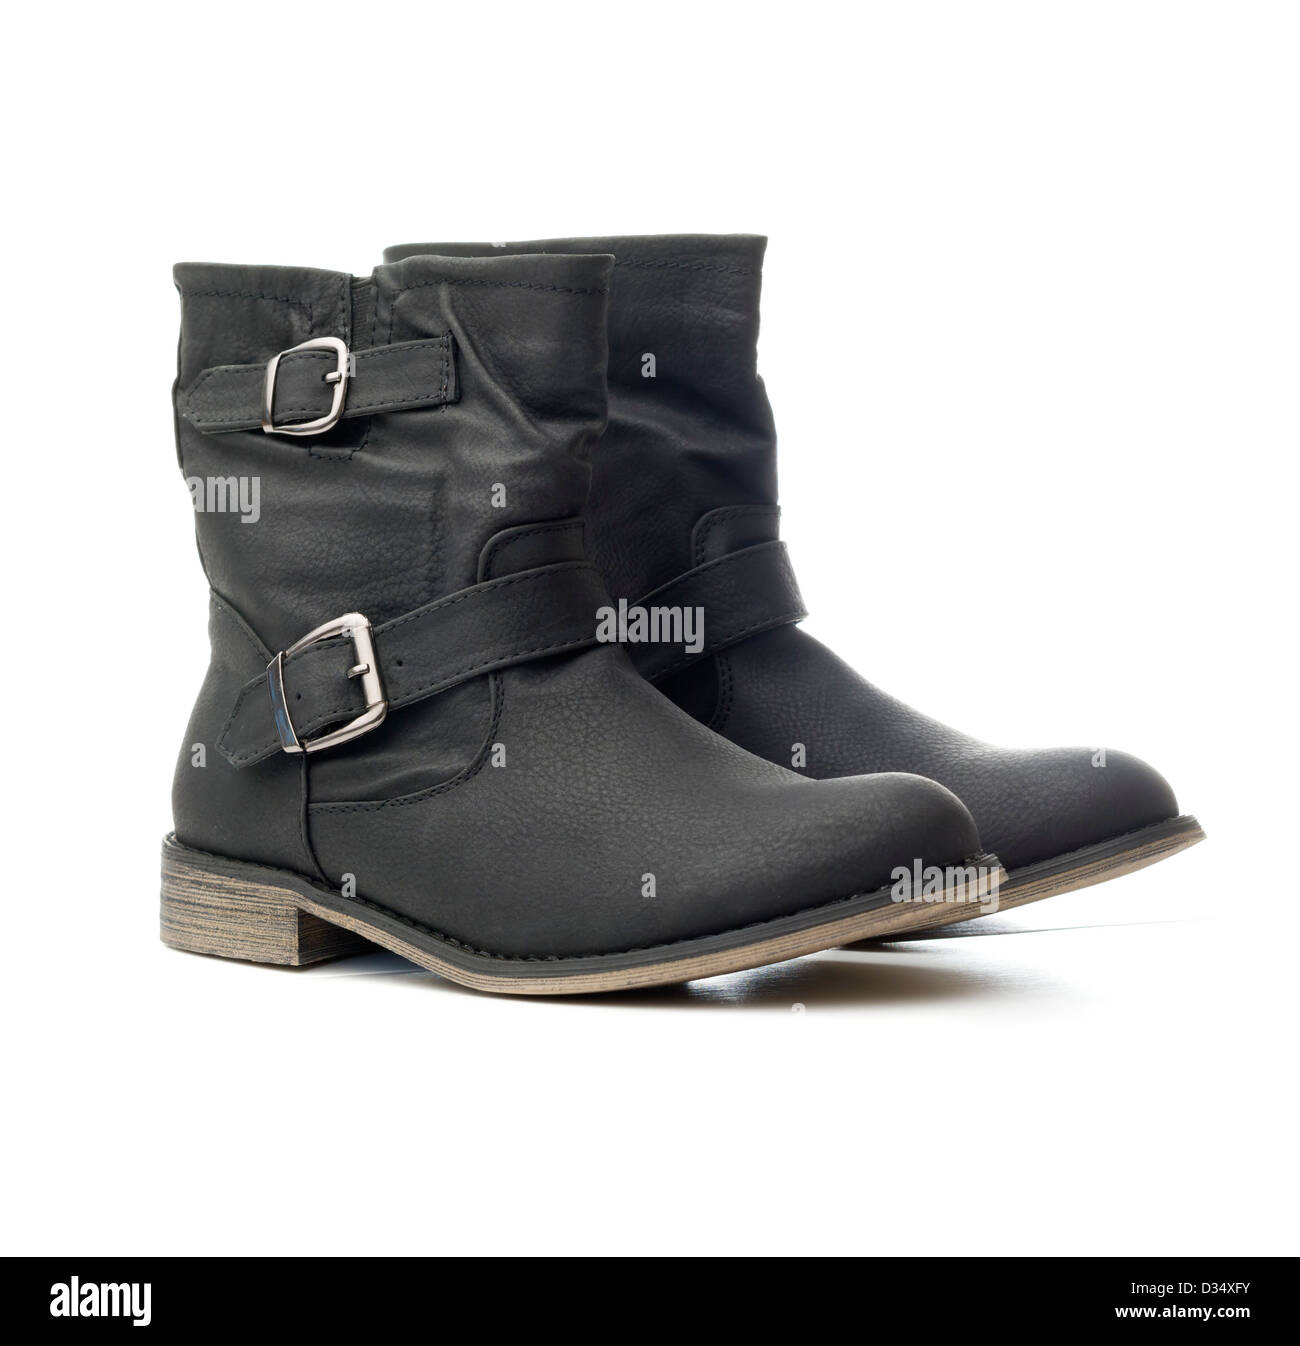 One pair of black Winter boots isolated on white background - Stock Image